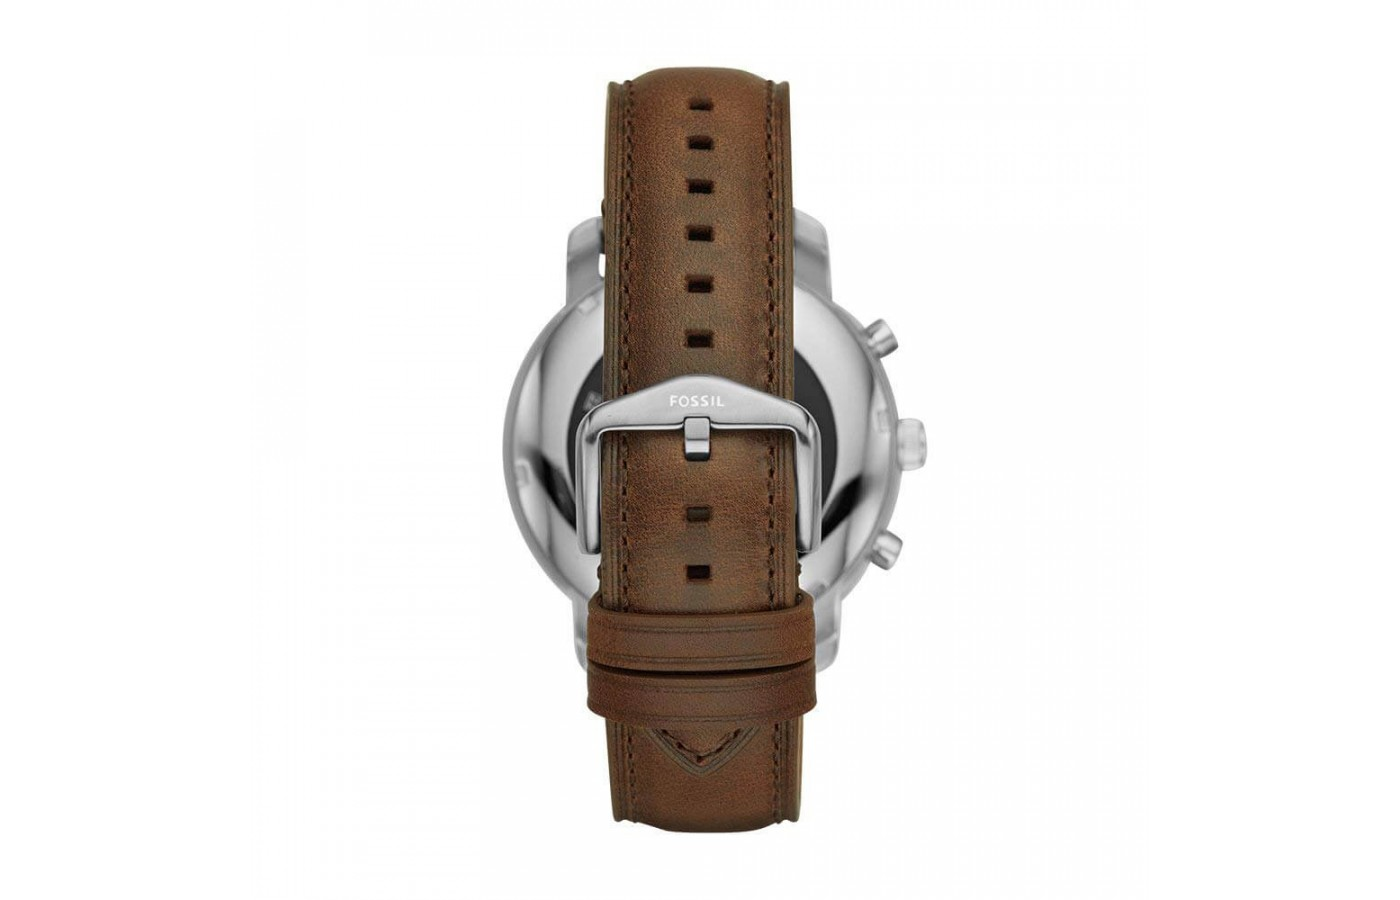 The leather version is an unsurprising – but very reliable – belt-buckle design.